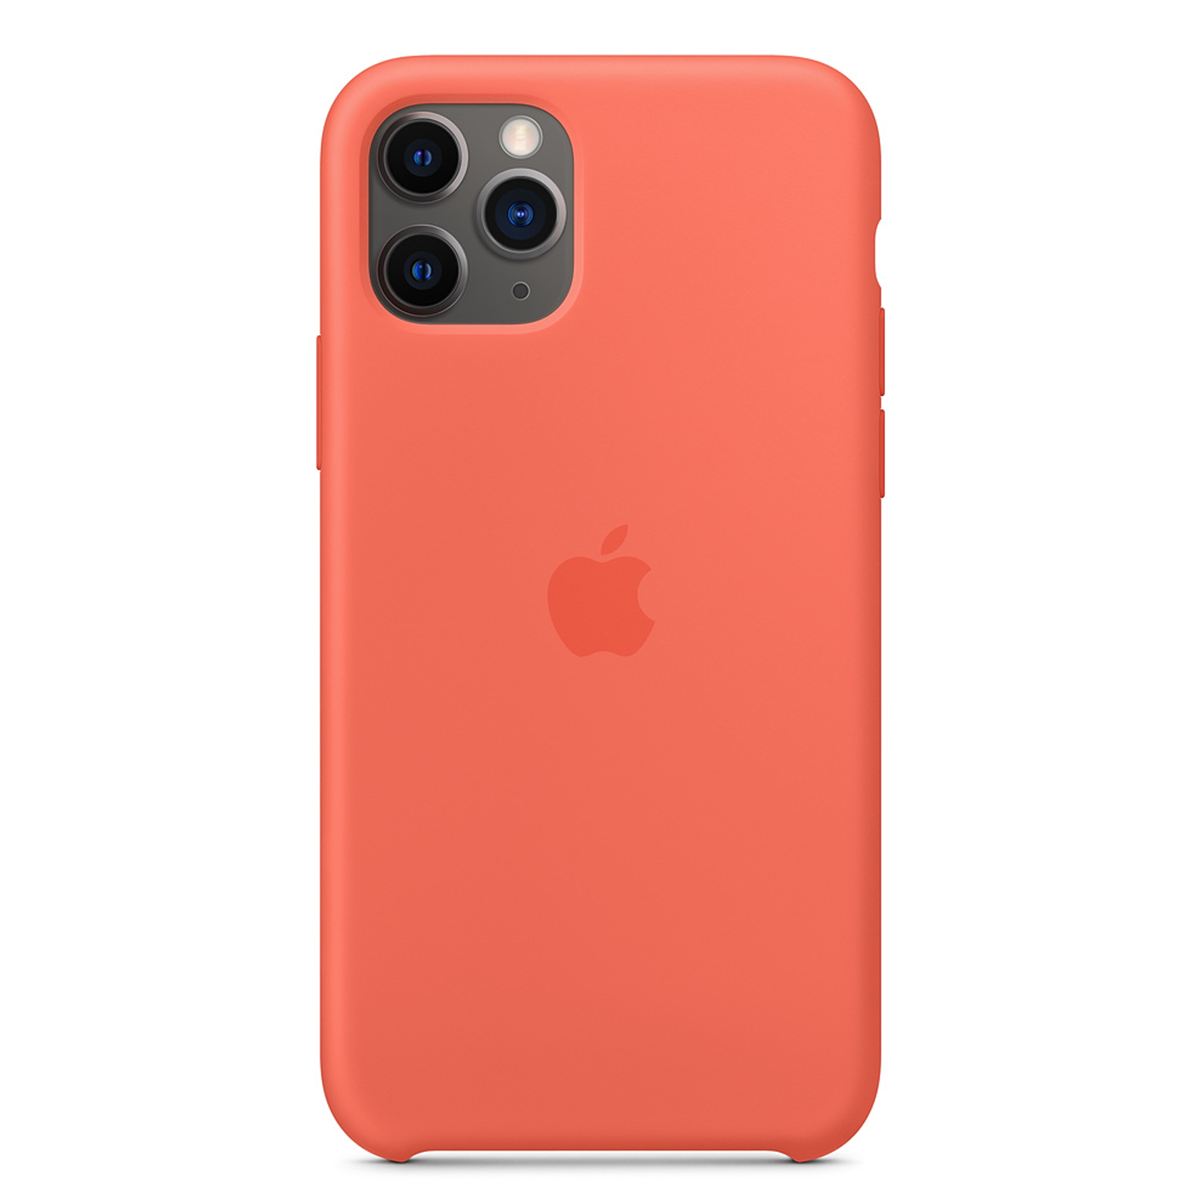 iPhone 11 Pro Silicone Case Alaskan Clementine (Orange)